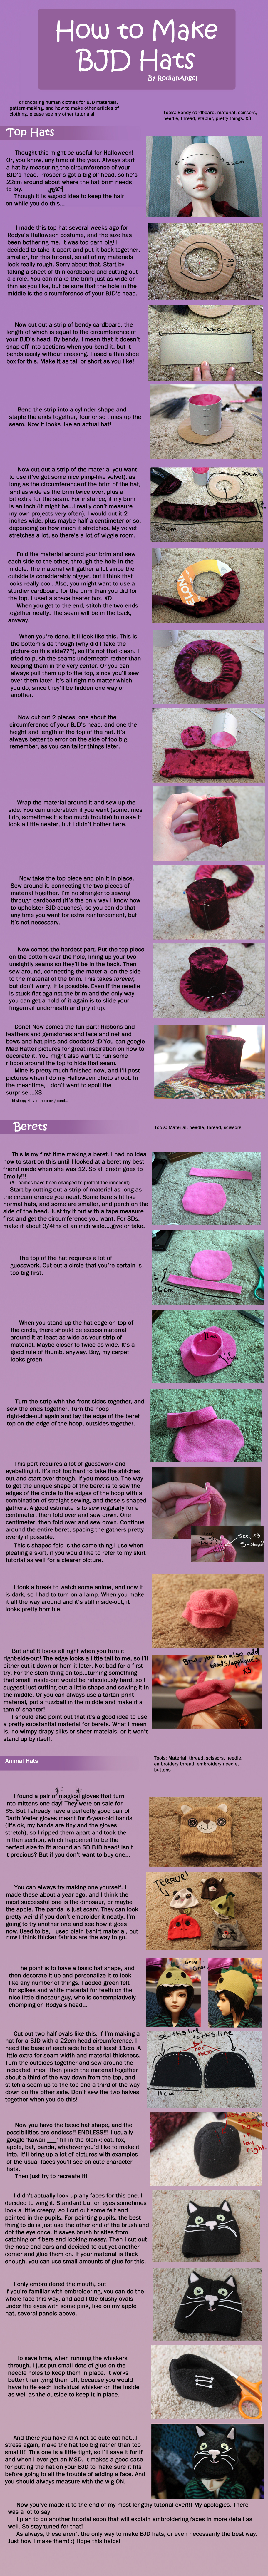 http://orig06.deviantart.net/dcf7/f/2013/286/c/0/how_to_make_bjd_hats_by_rodianangel-d6qdb2u.jpg